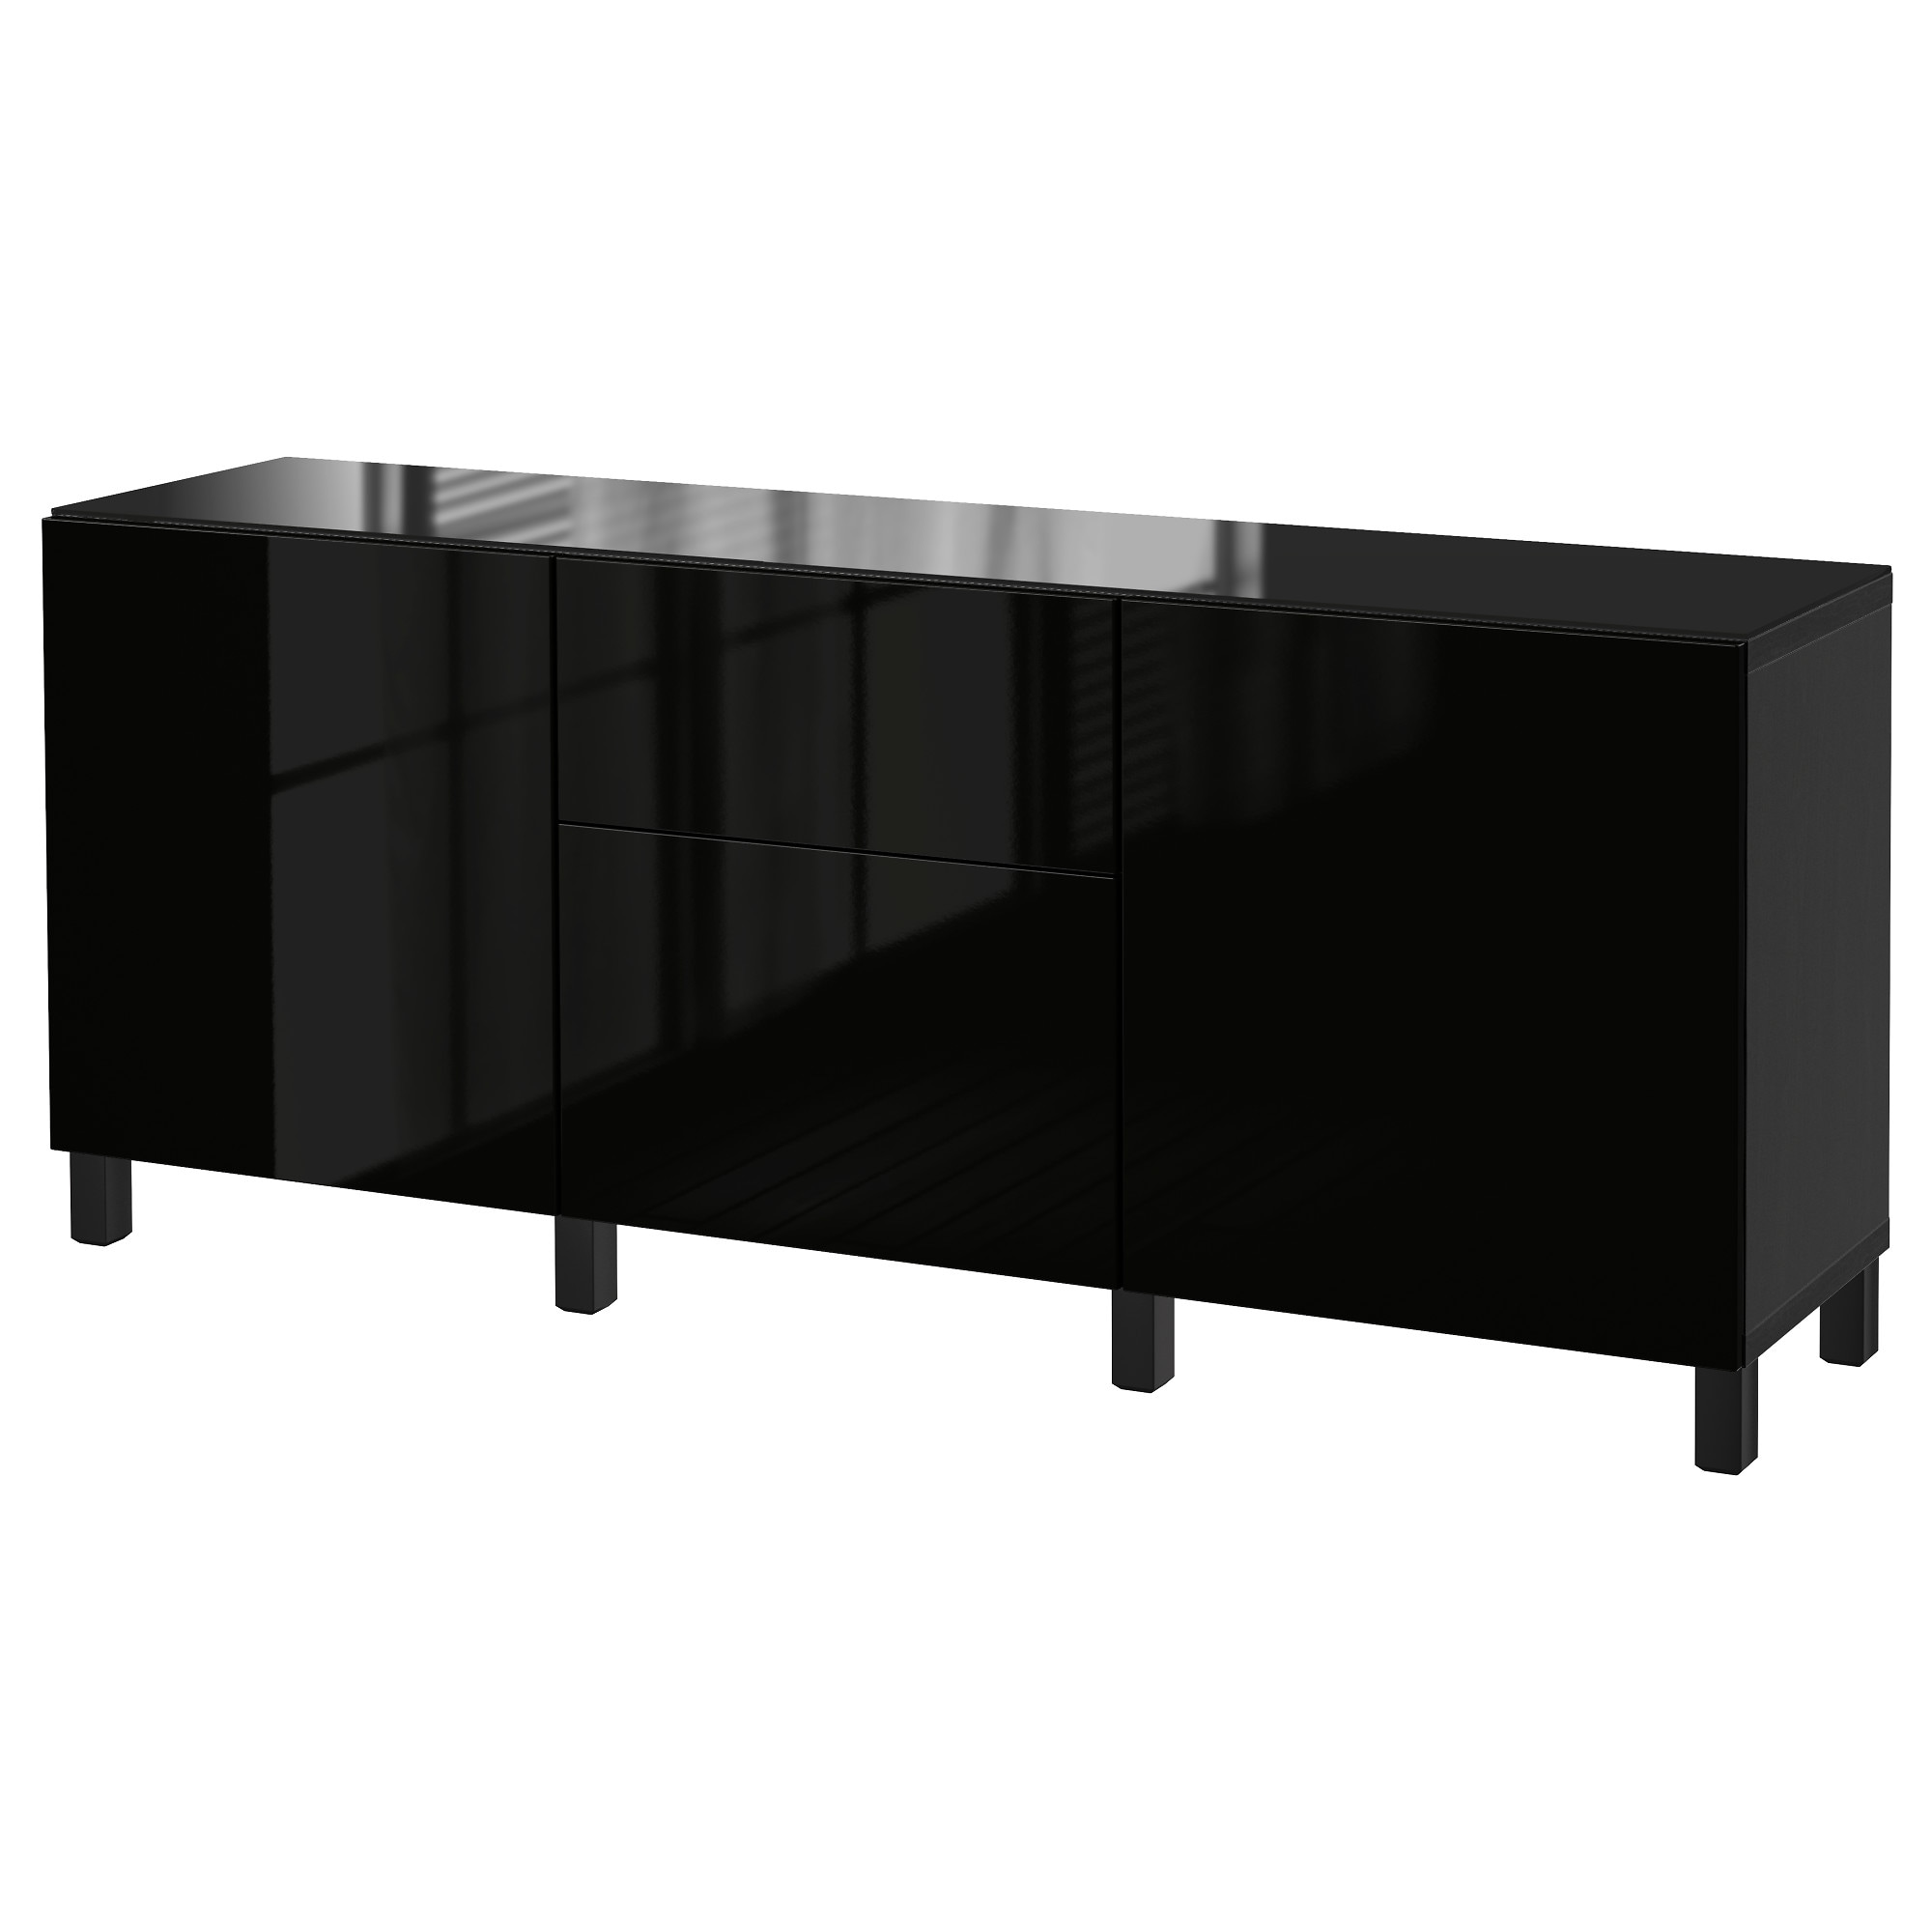 High Gloss Storage Cabinets Combinations Best System Ikea